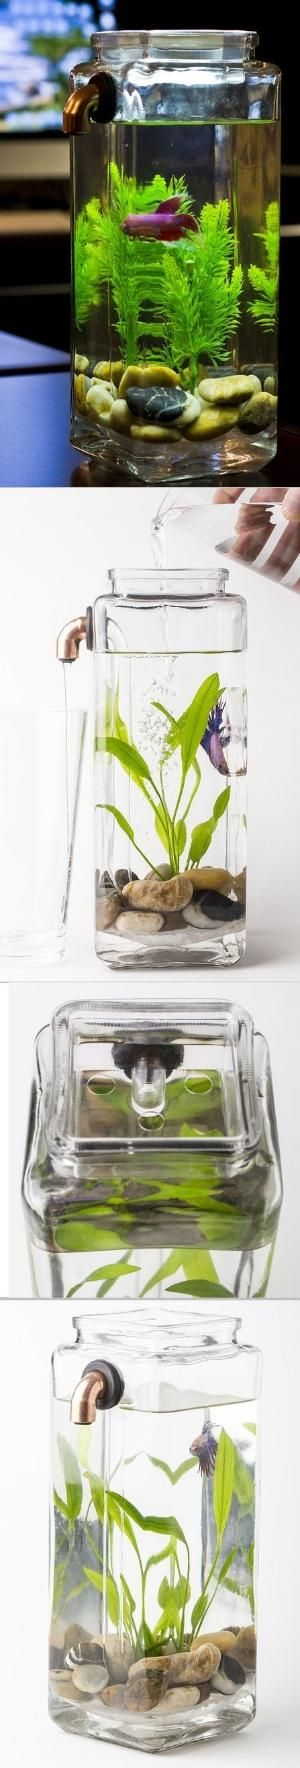 1000 ideas about aquarium filters on pinterest best for Filter for betta fish